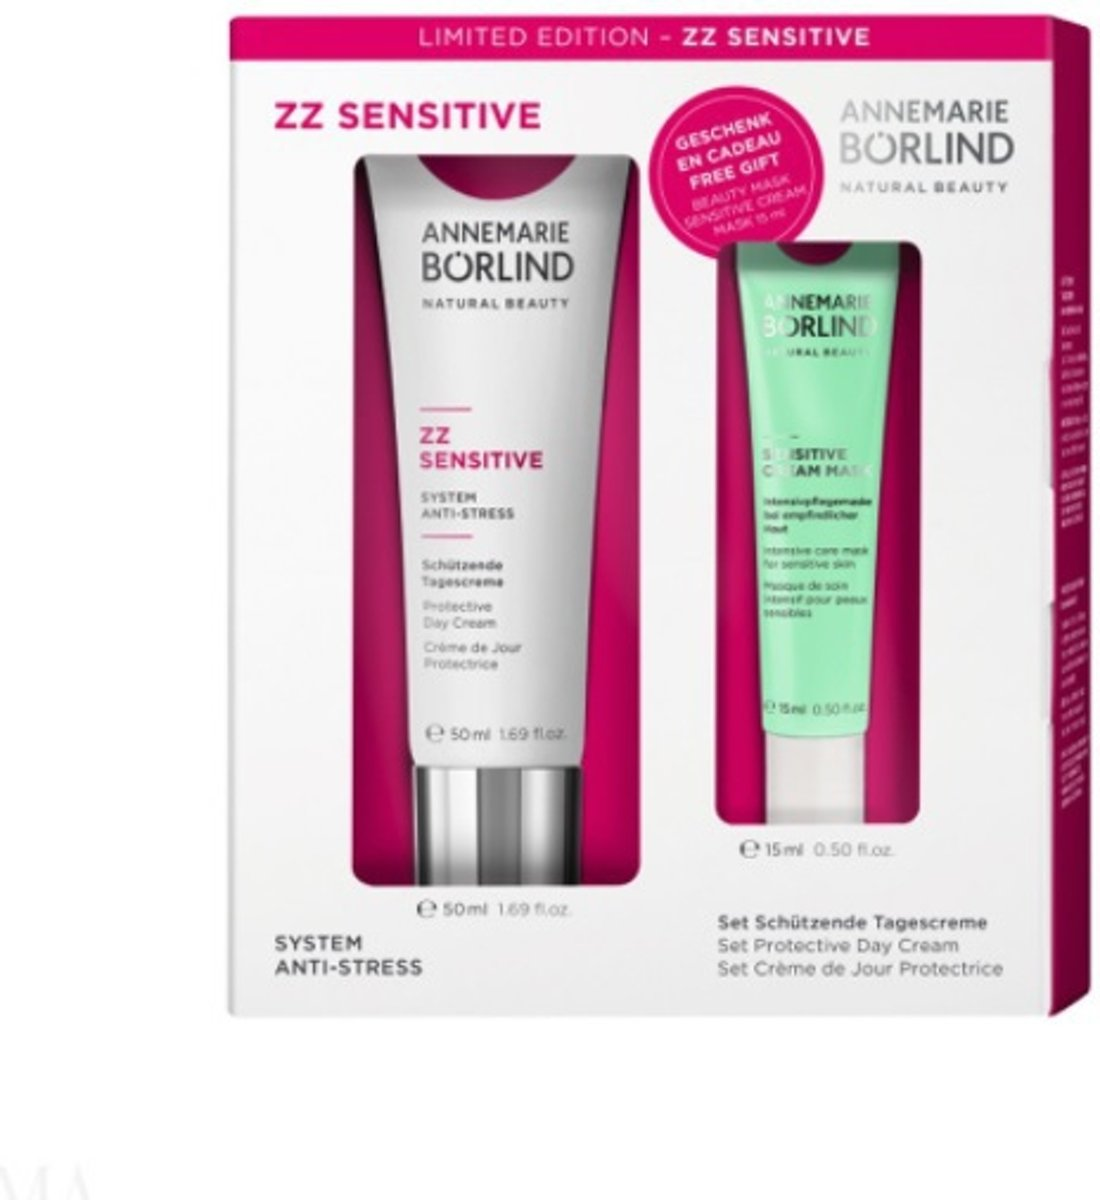 Annemarie Borlind Geschenkset zz sensitive limited edition